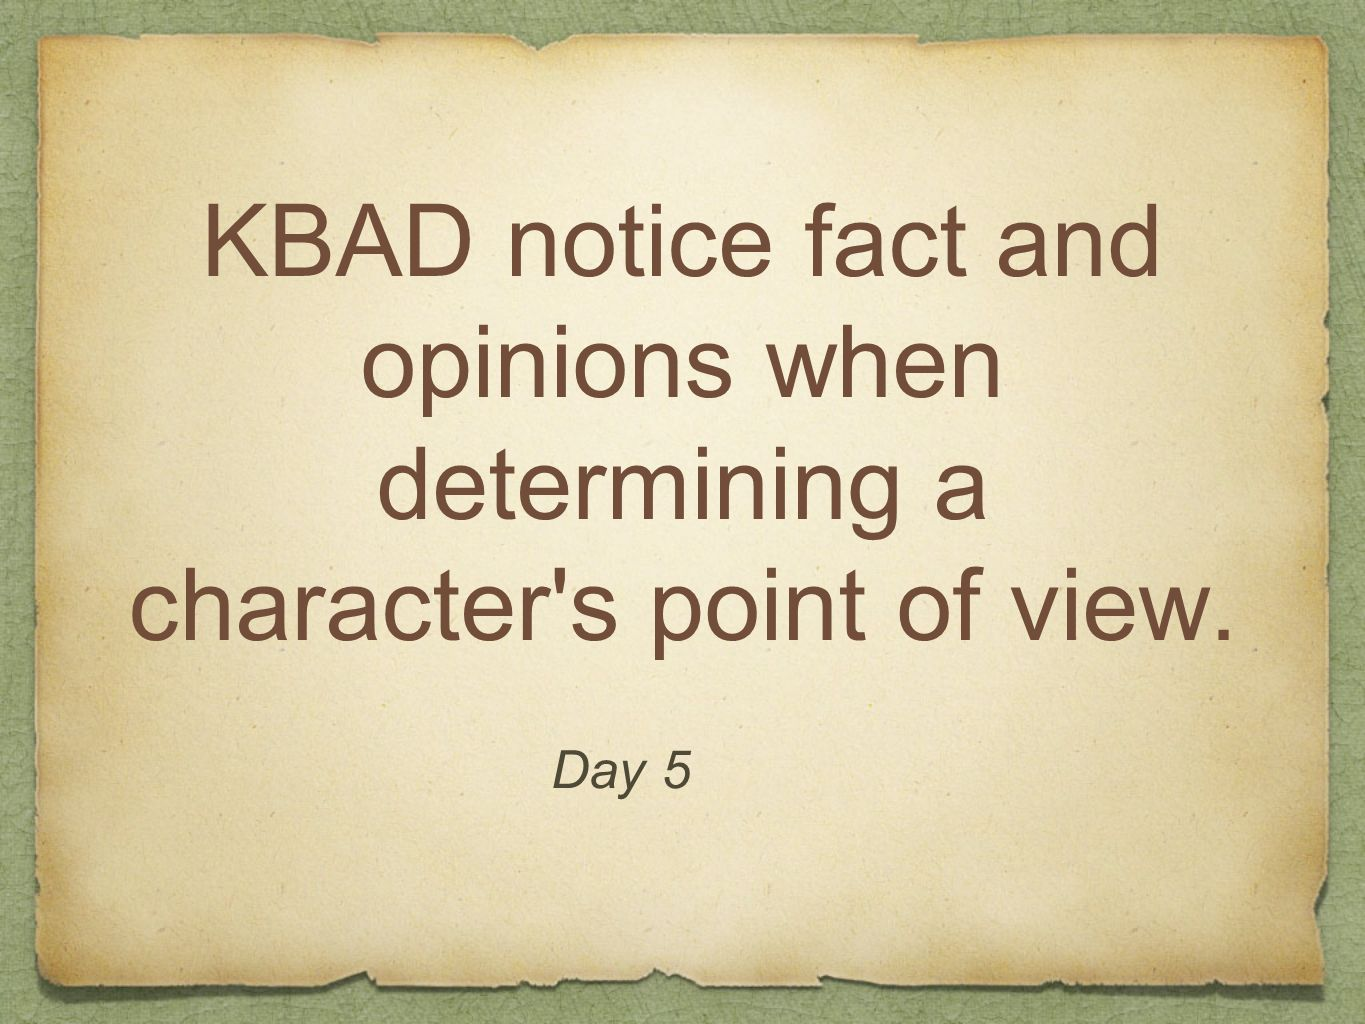 KBAD notice fact and opinions when determining a character s point of view.